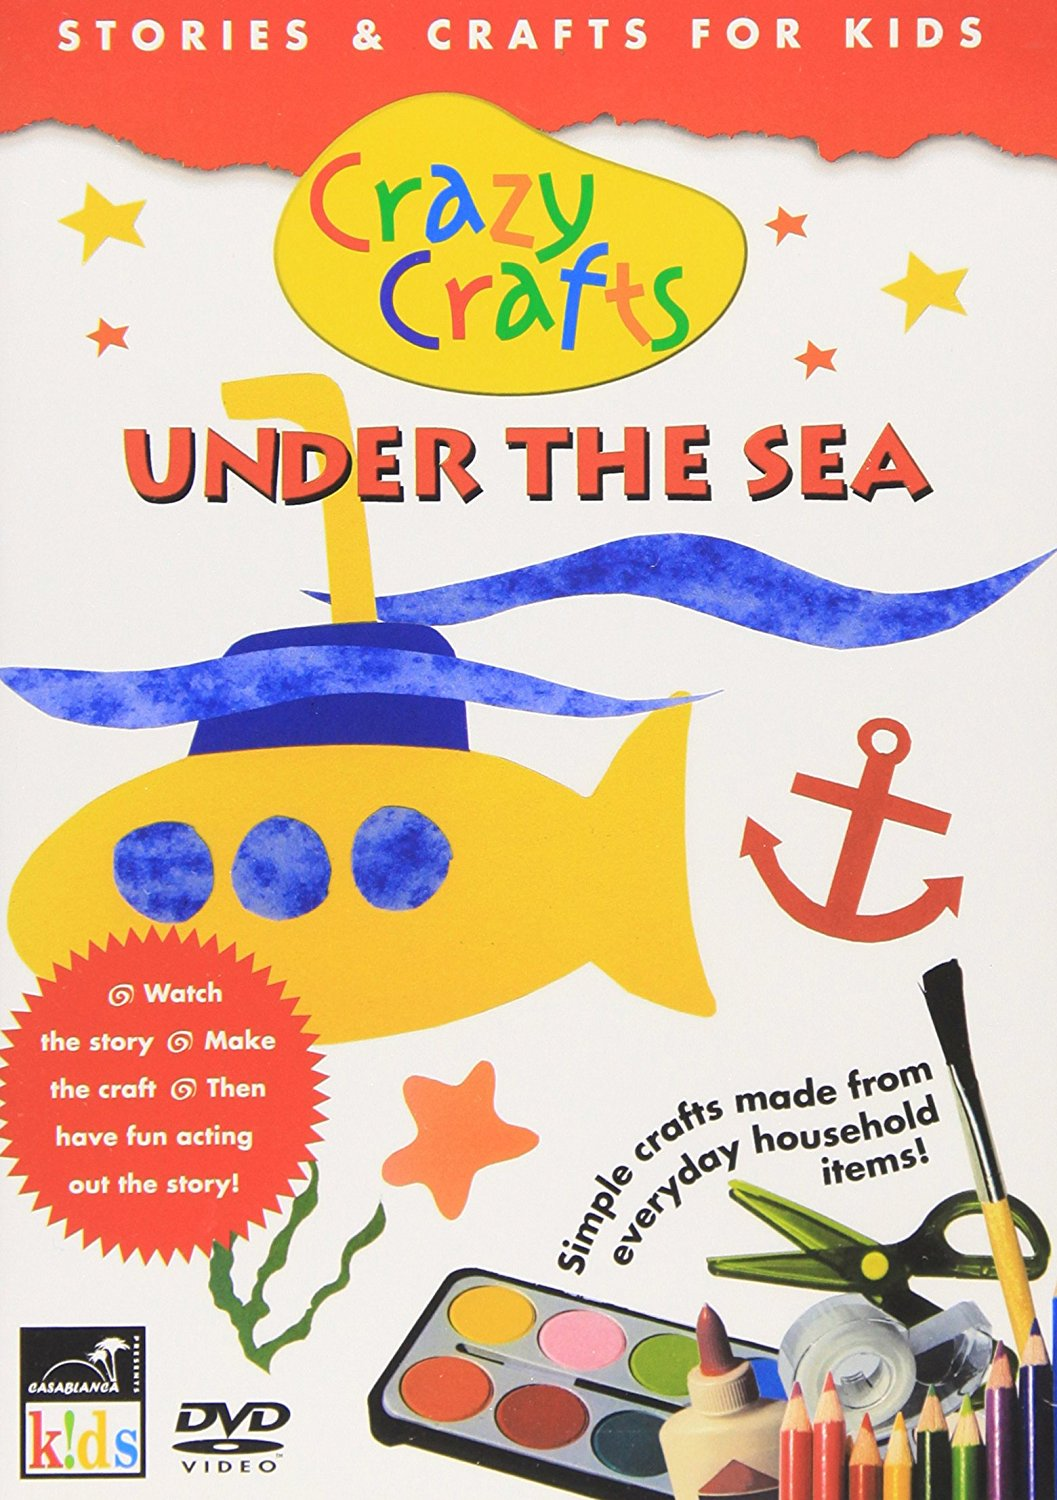 Crazy Crafts Under The Sea - Stories And Crafts For Kids